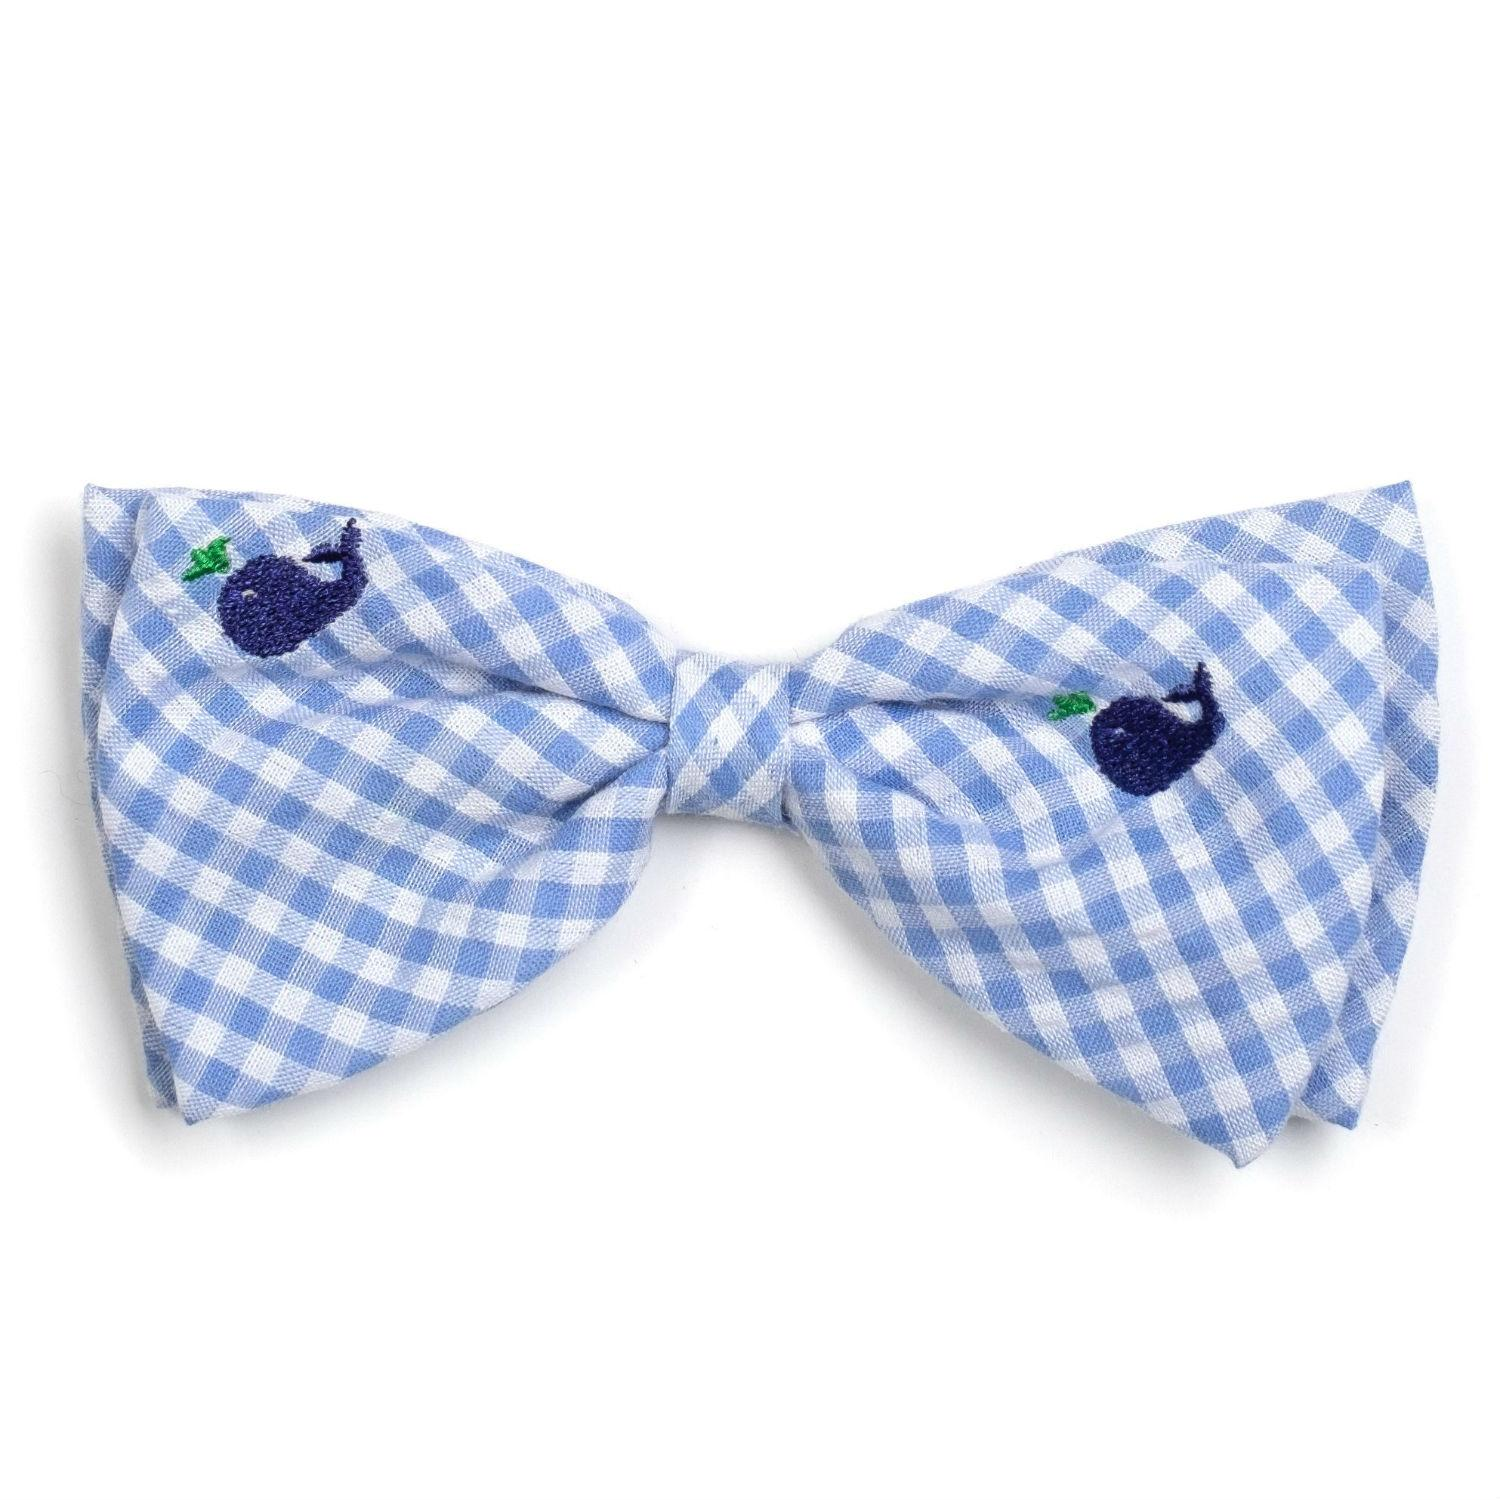 Worthy Dog Gingham Whales Dog and Cat Bow Tie Collar Attachment